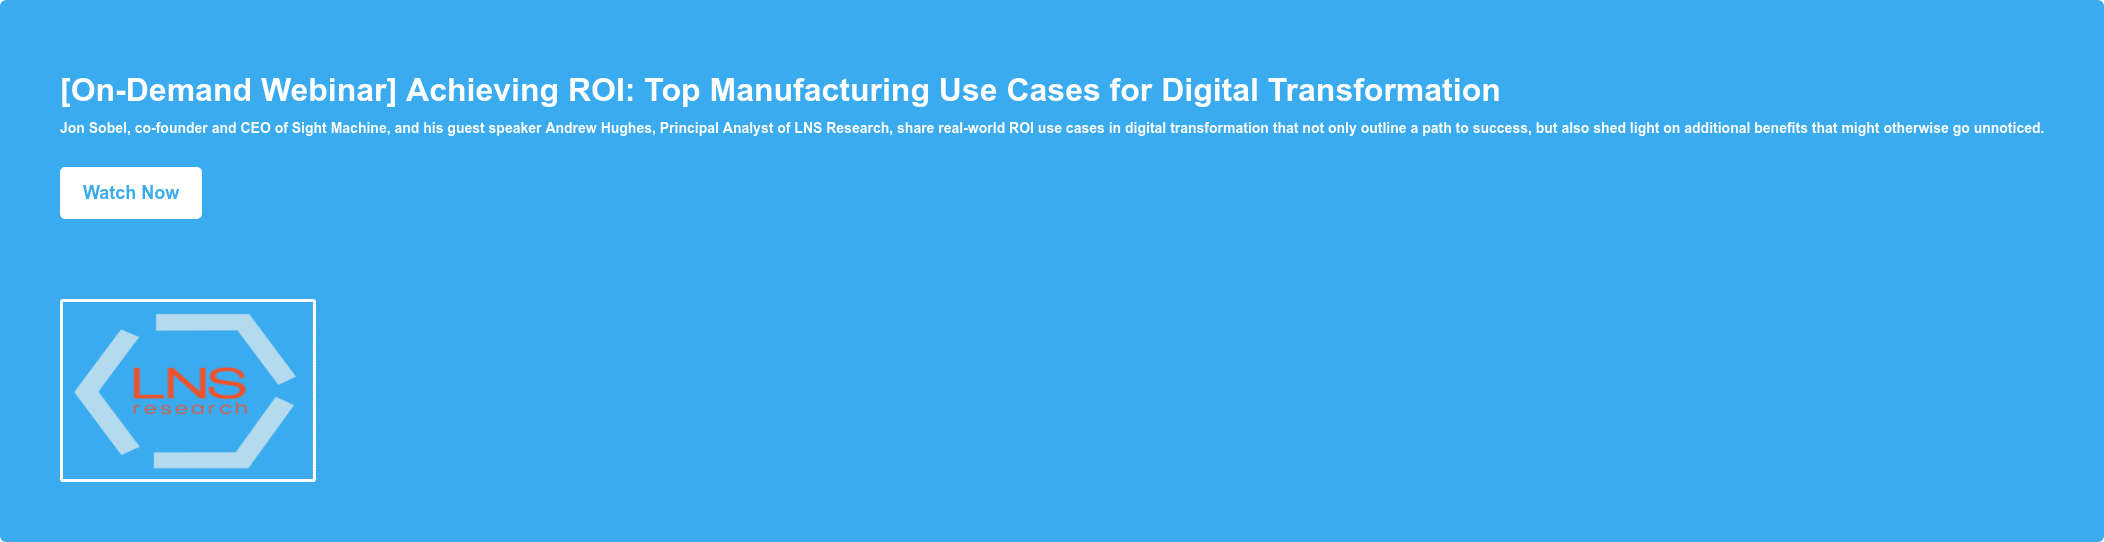 [On-Demand Webinar] Achieving ROI: Top Manufacturing Use Cases for Digital  Transformation Jon Sobel, co-founder and CEO of Sight Machine, and his guest  speaker Andrew Hughes, Principal Analyst of LNS Research, share real-world ROI  use cases in digital transformation that not only outline a path to success,  but also shed light on additional benefits that might otherwise go unnoticed.  Watch Now